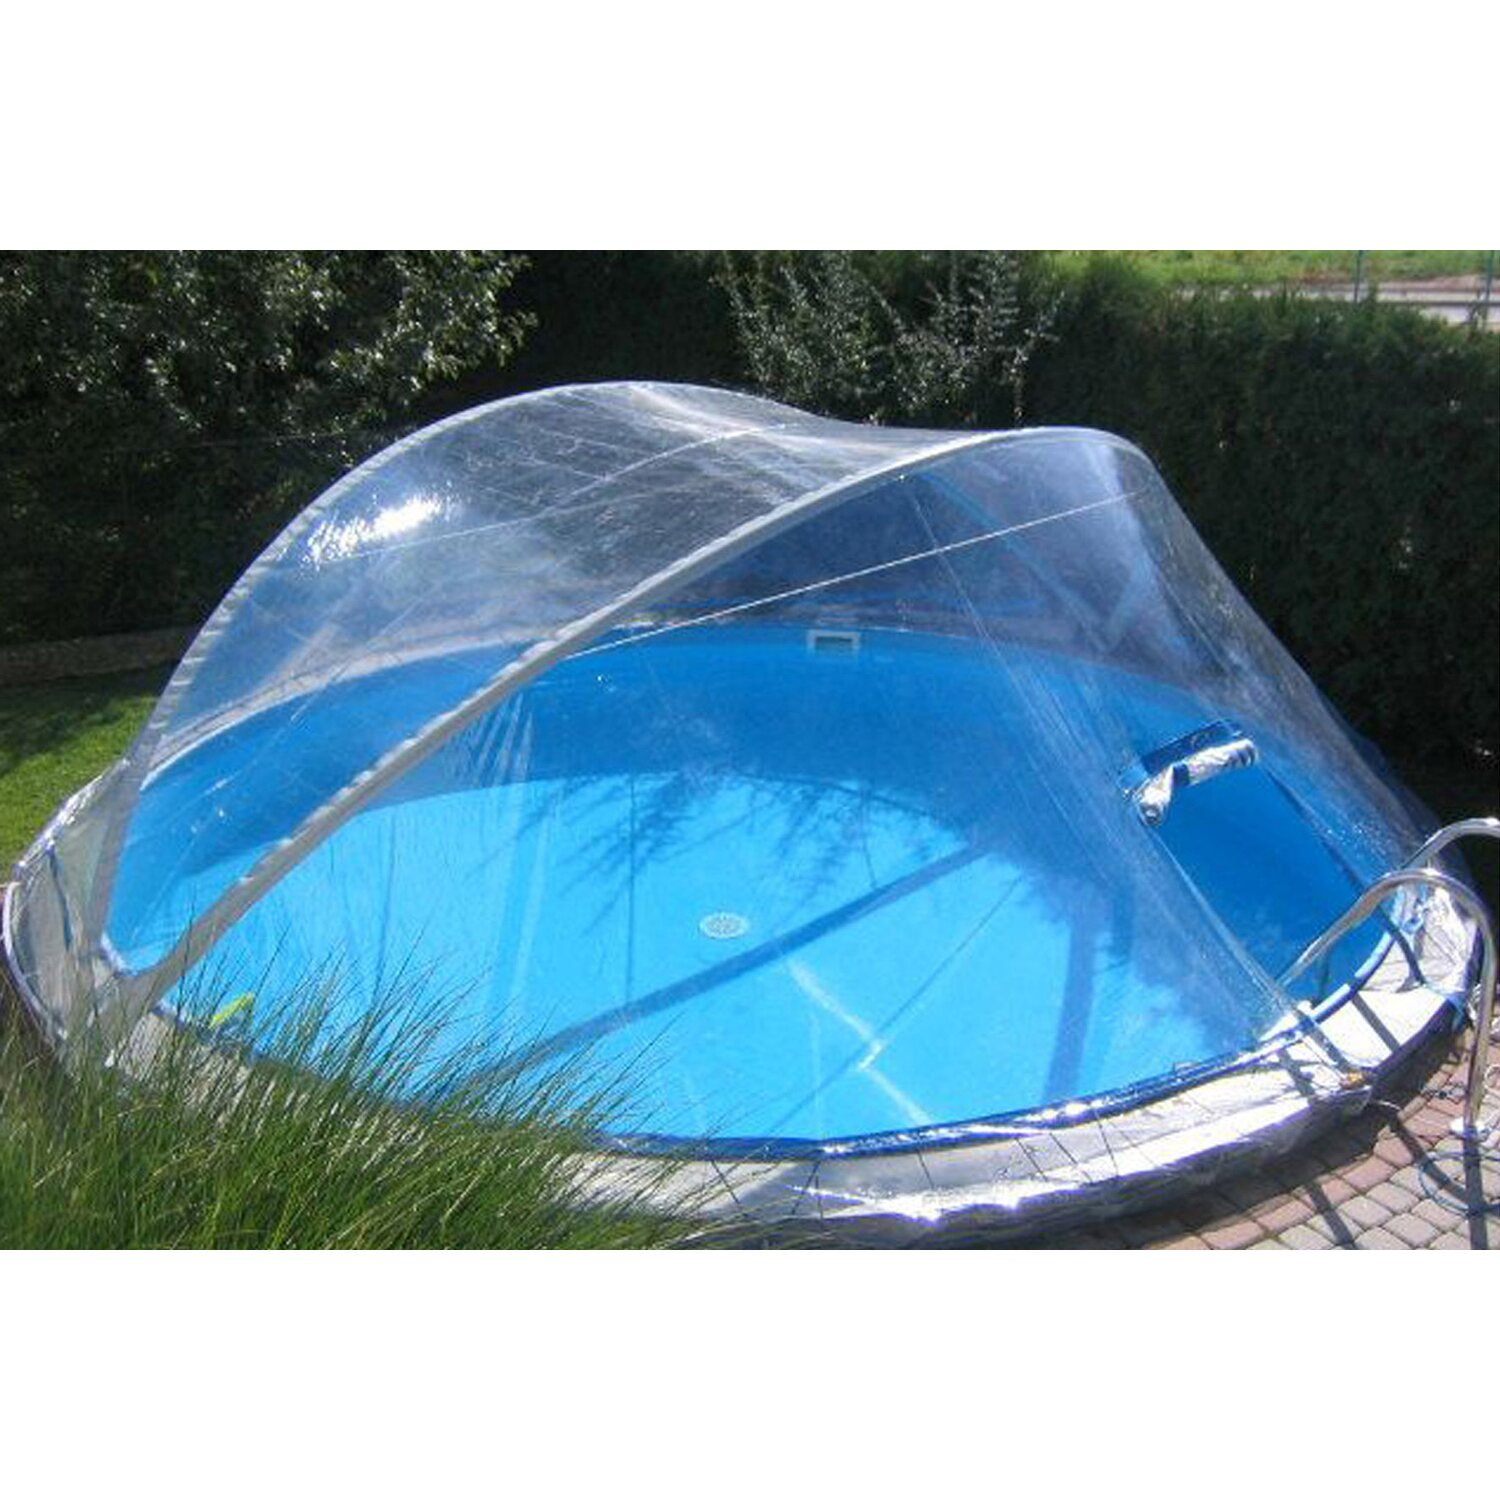 Summer fun pool berdachung cabrio dome f r pools 350 cm for Pool obi baumarkt